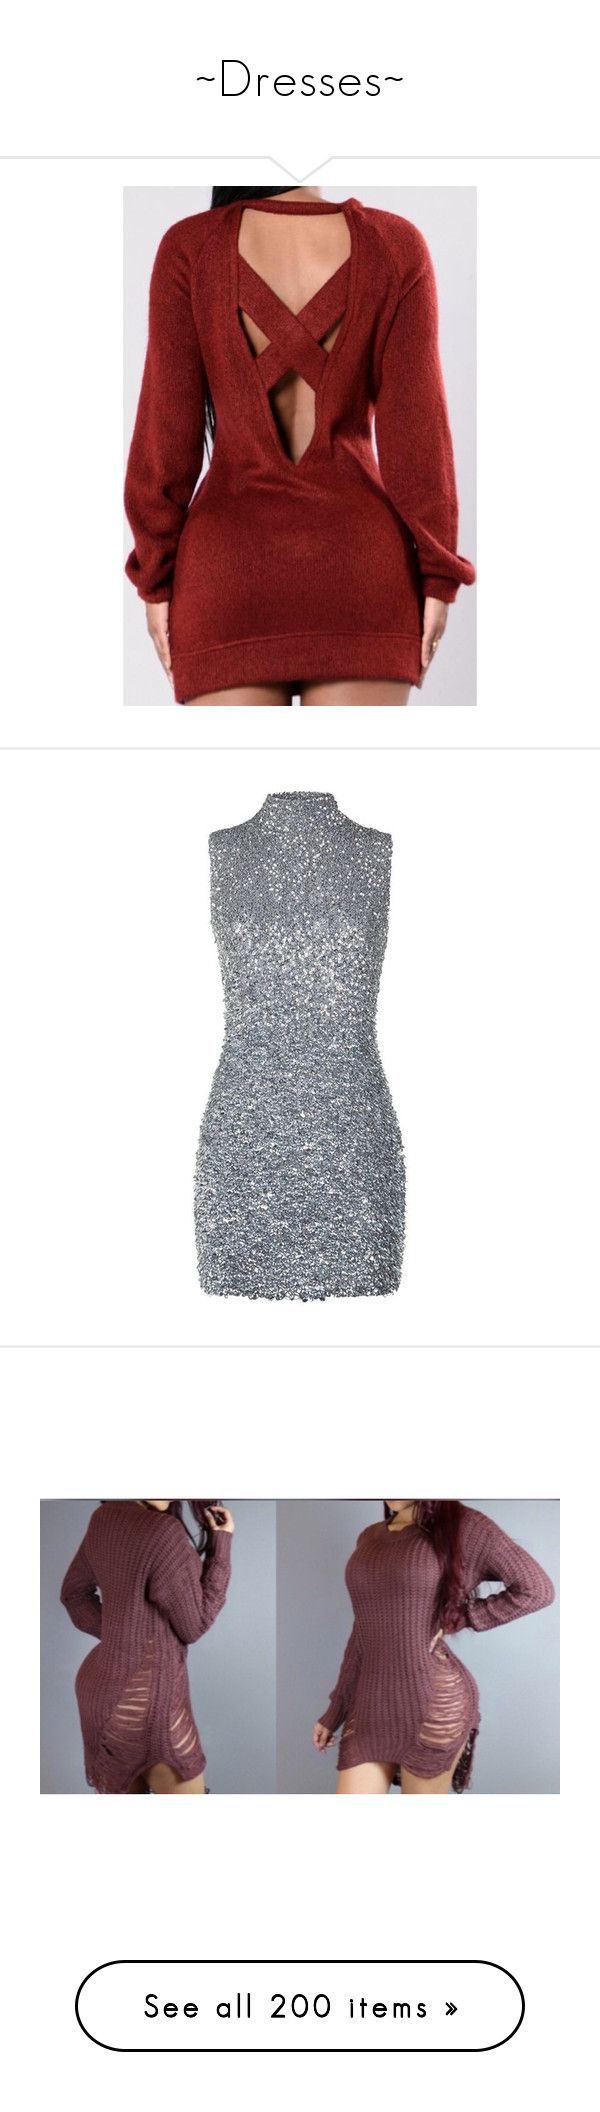 """""""~Dresses~"""" by jadab521 ❤ liked on Polyvore featuring dresses, vestidos, short dresses, short cocktail dresses, silver dresses, short sequin dress, silver sparkly dress, sequin cocktail dresses, off shoulder mini dress and sweater dress"""